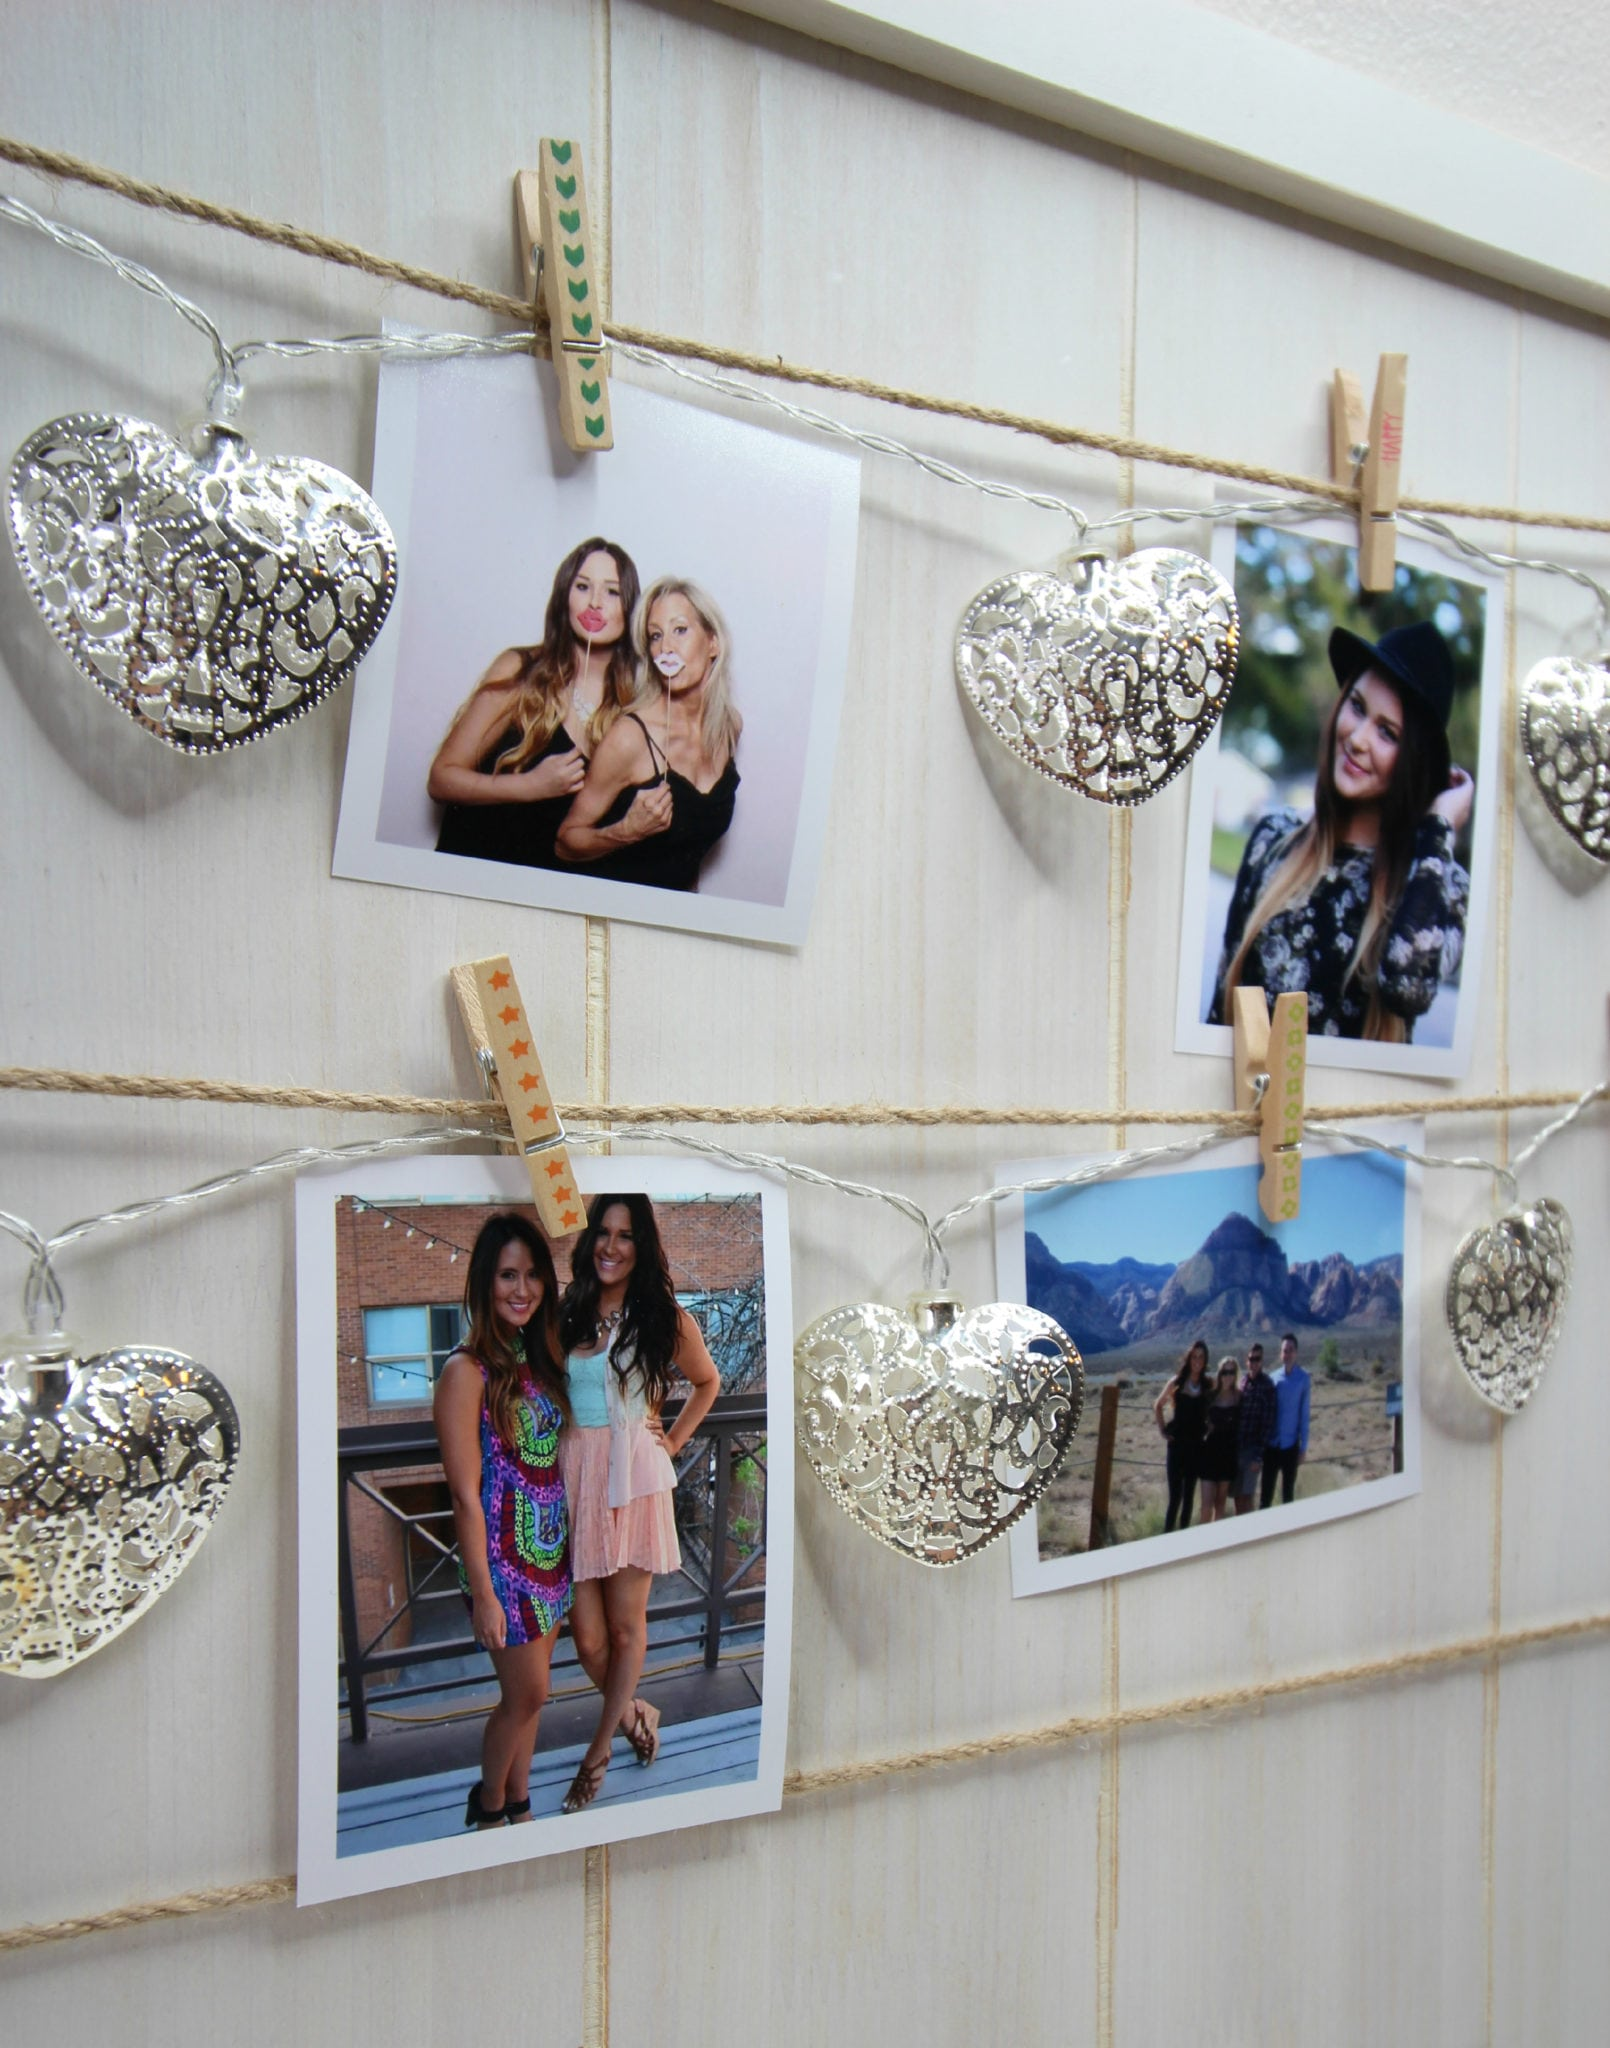 Mash Elle photo memory board | Mash Elle photo memory board | DIY photos | hanging photos in your room | dorm ideas | easy DIY | polaroid photos